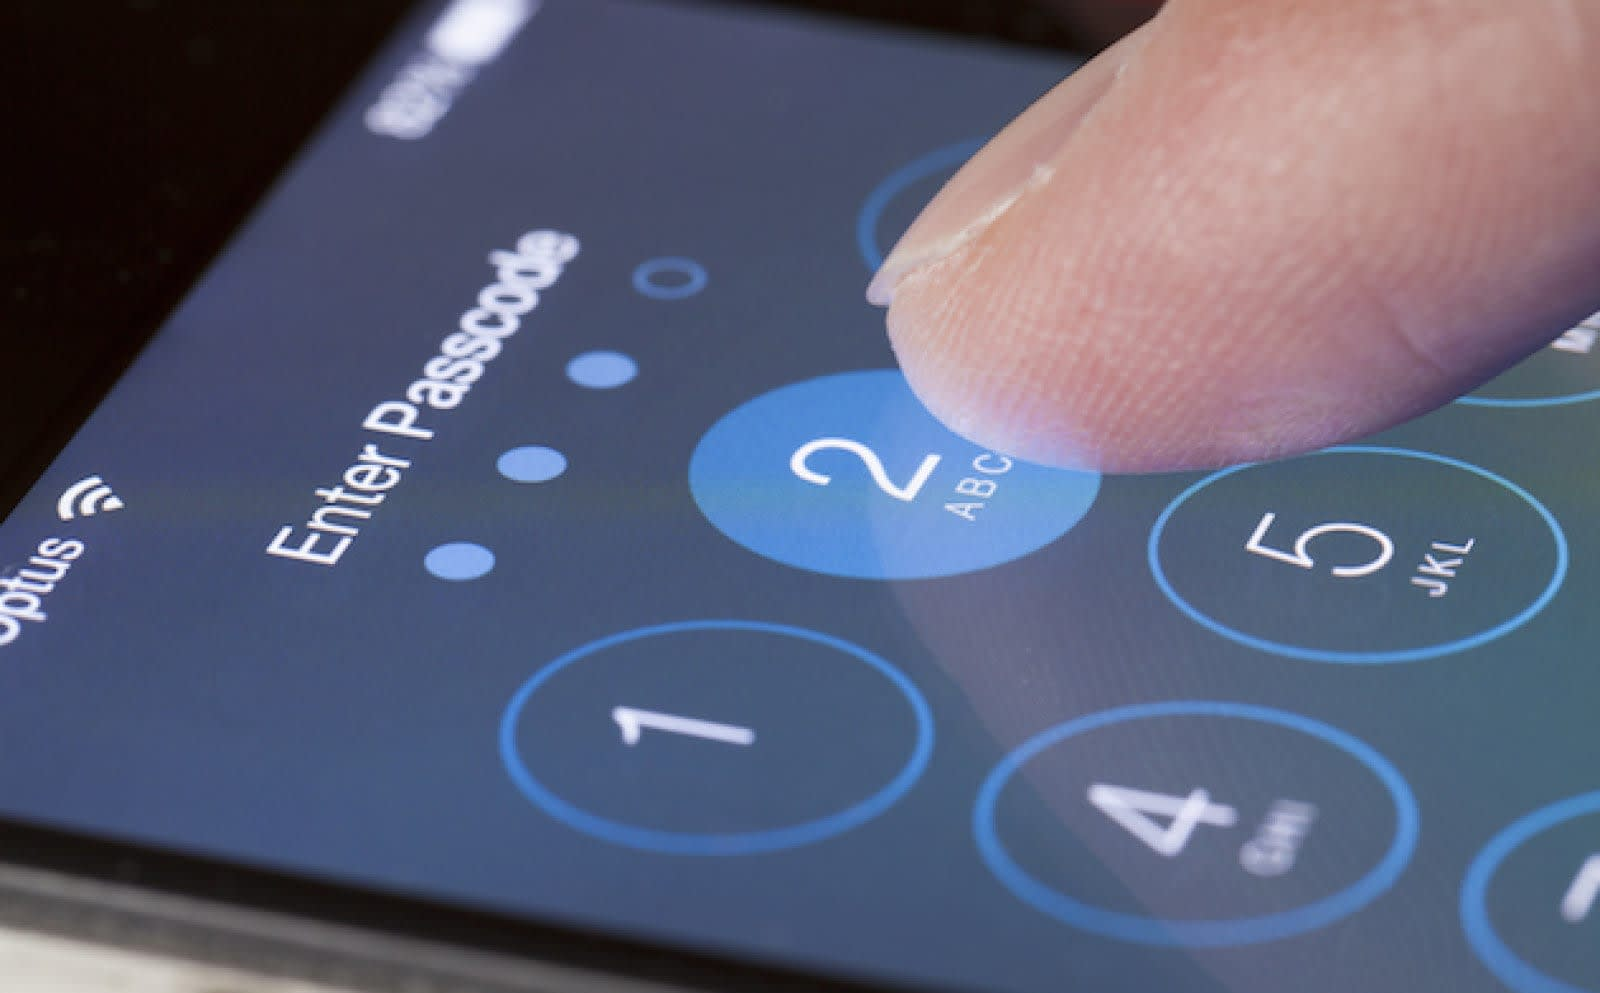 Security researcher bypasses iPhone's limit on passcode attempts